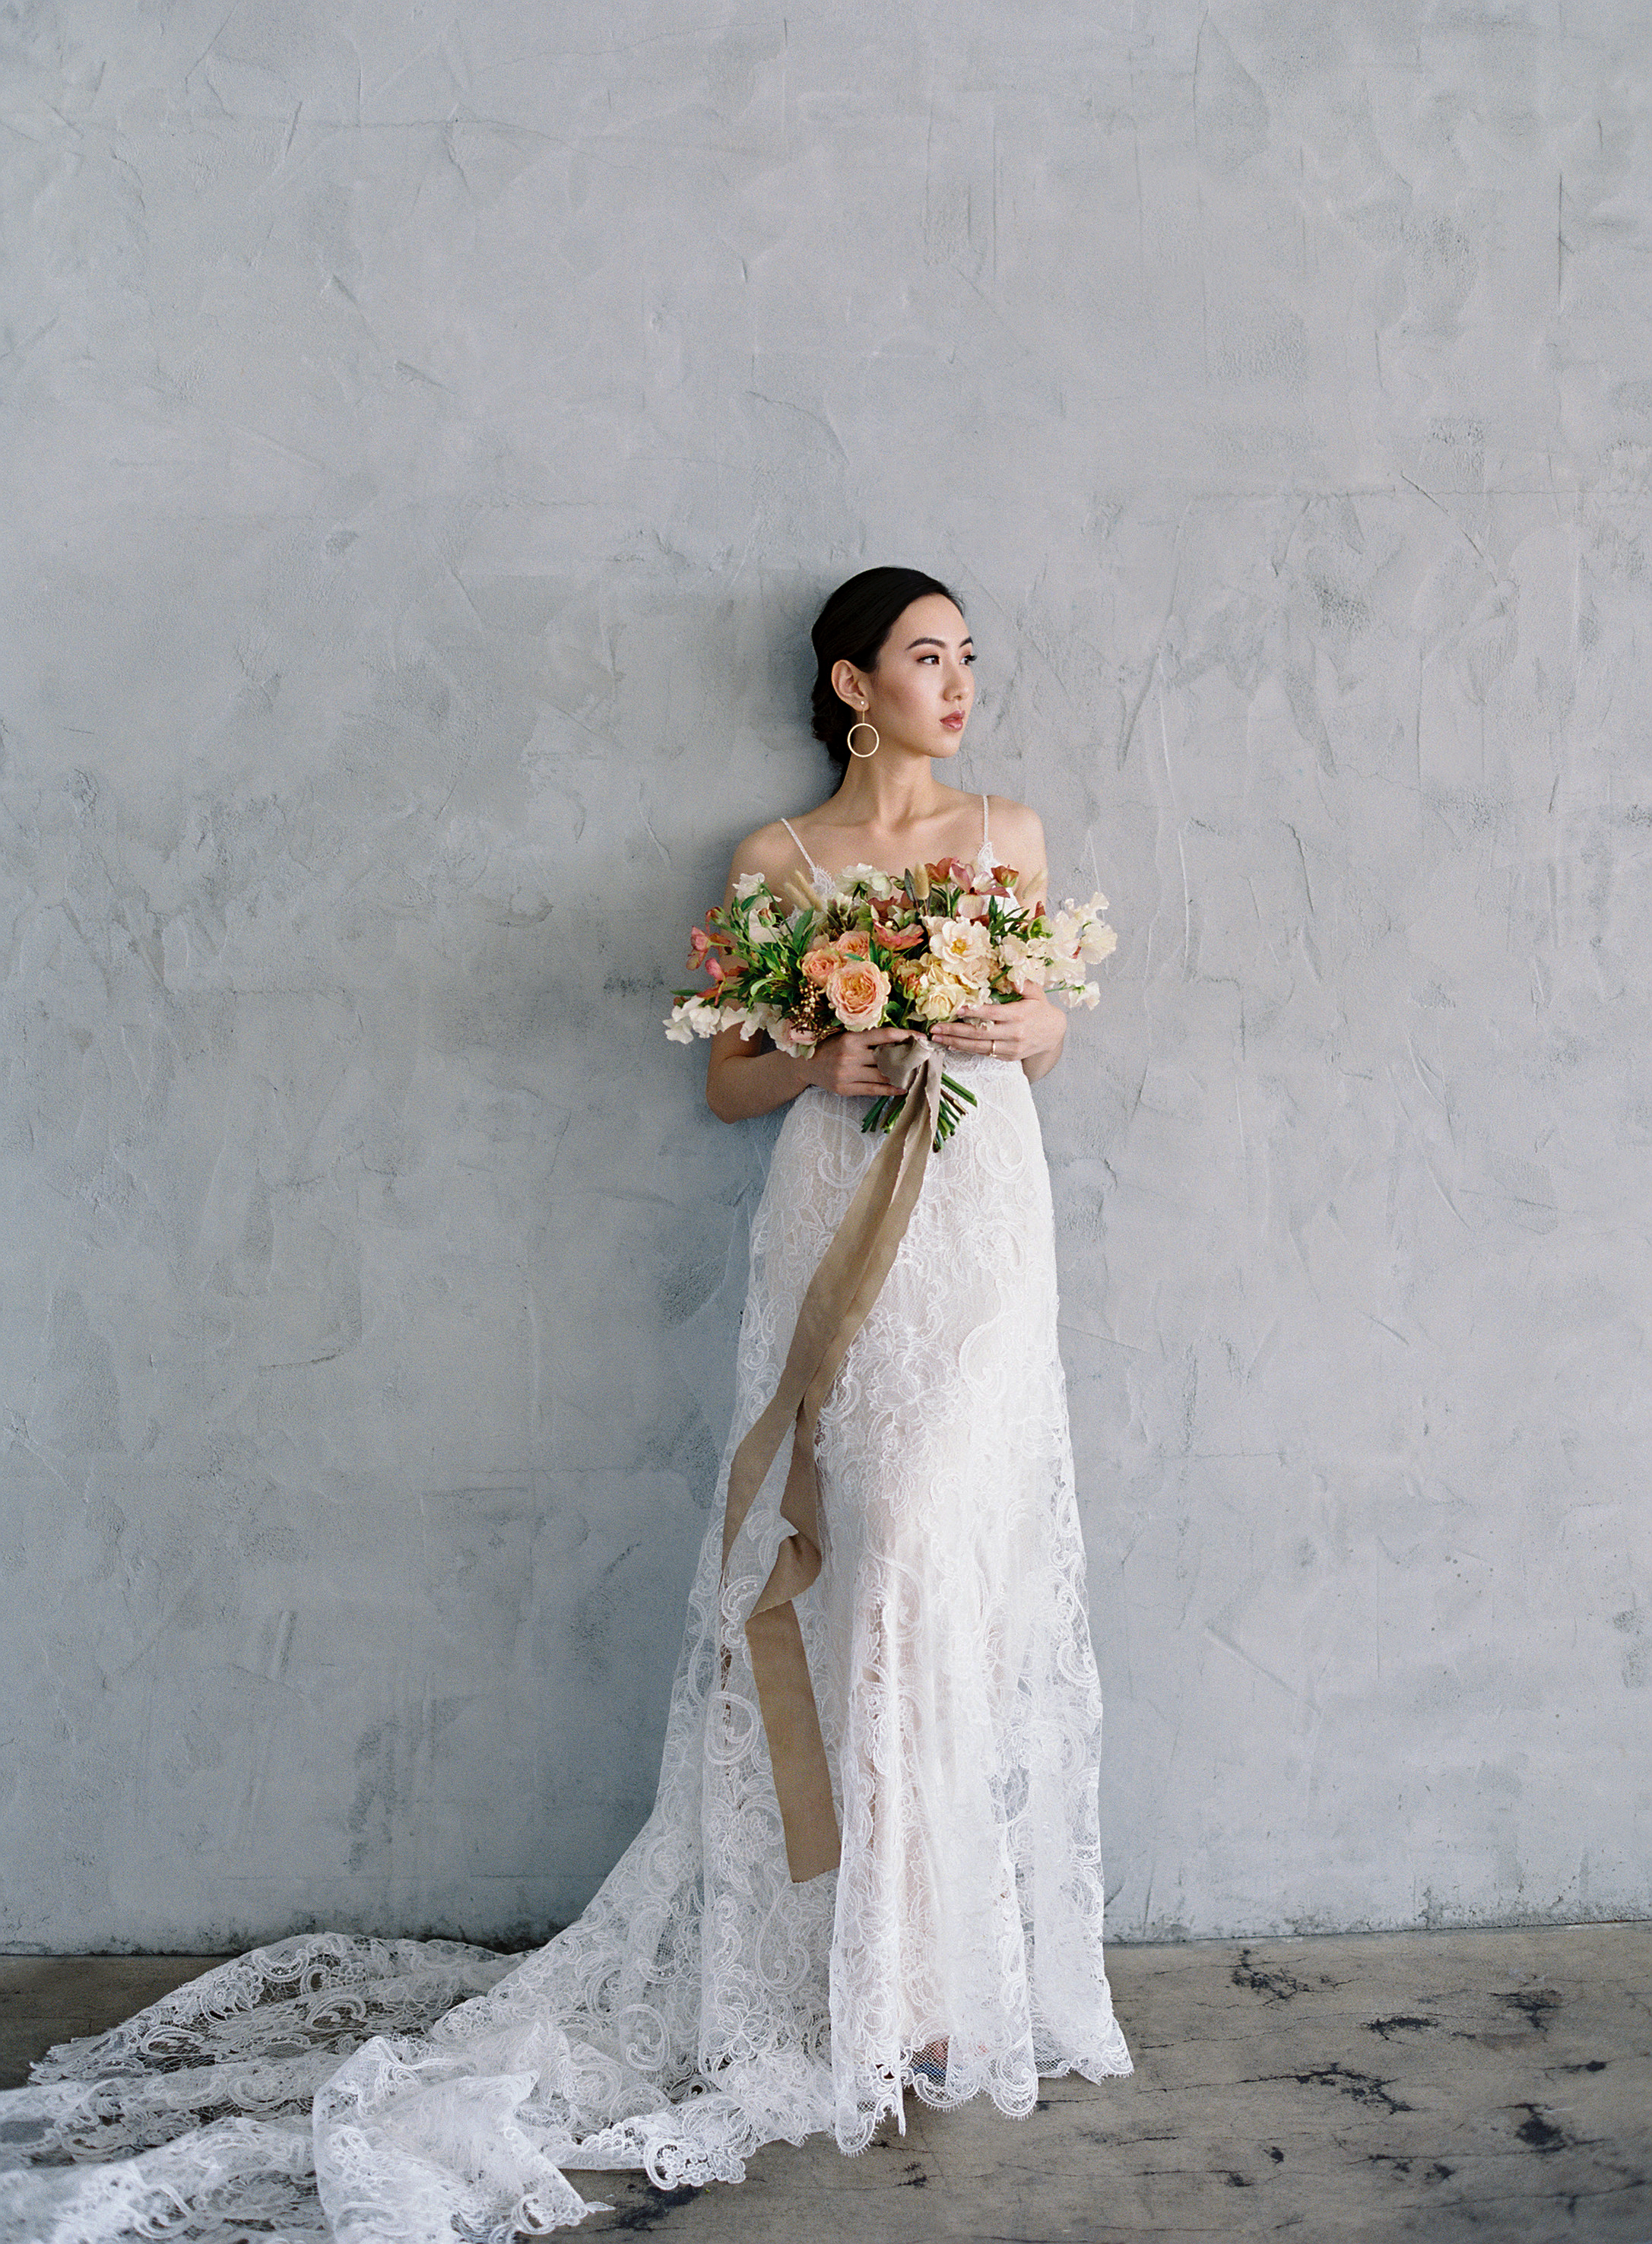 102-Bouquet_by_Ellamah-Photo_by_Christine_Donee-Gown_by_Flora.jpg